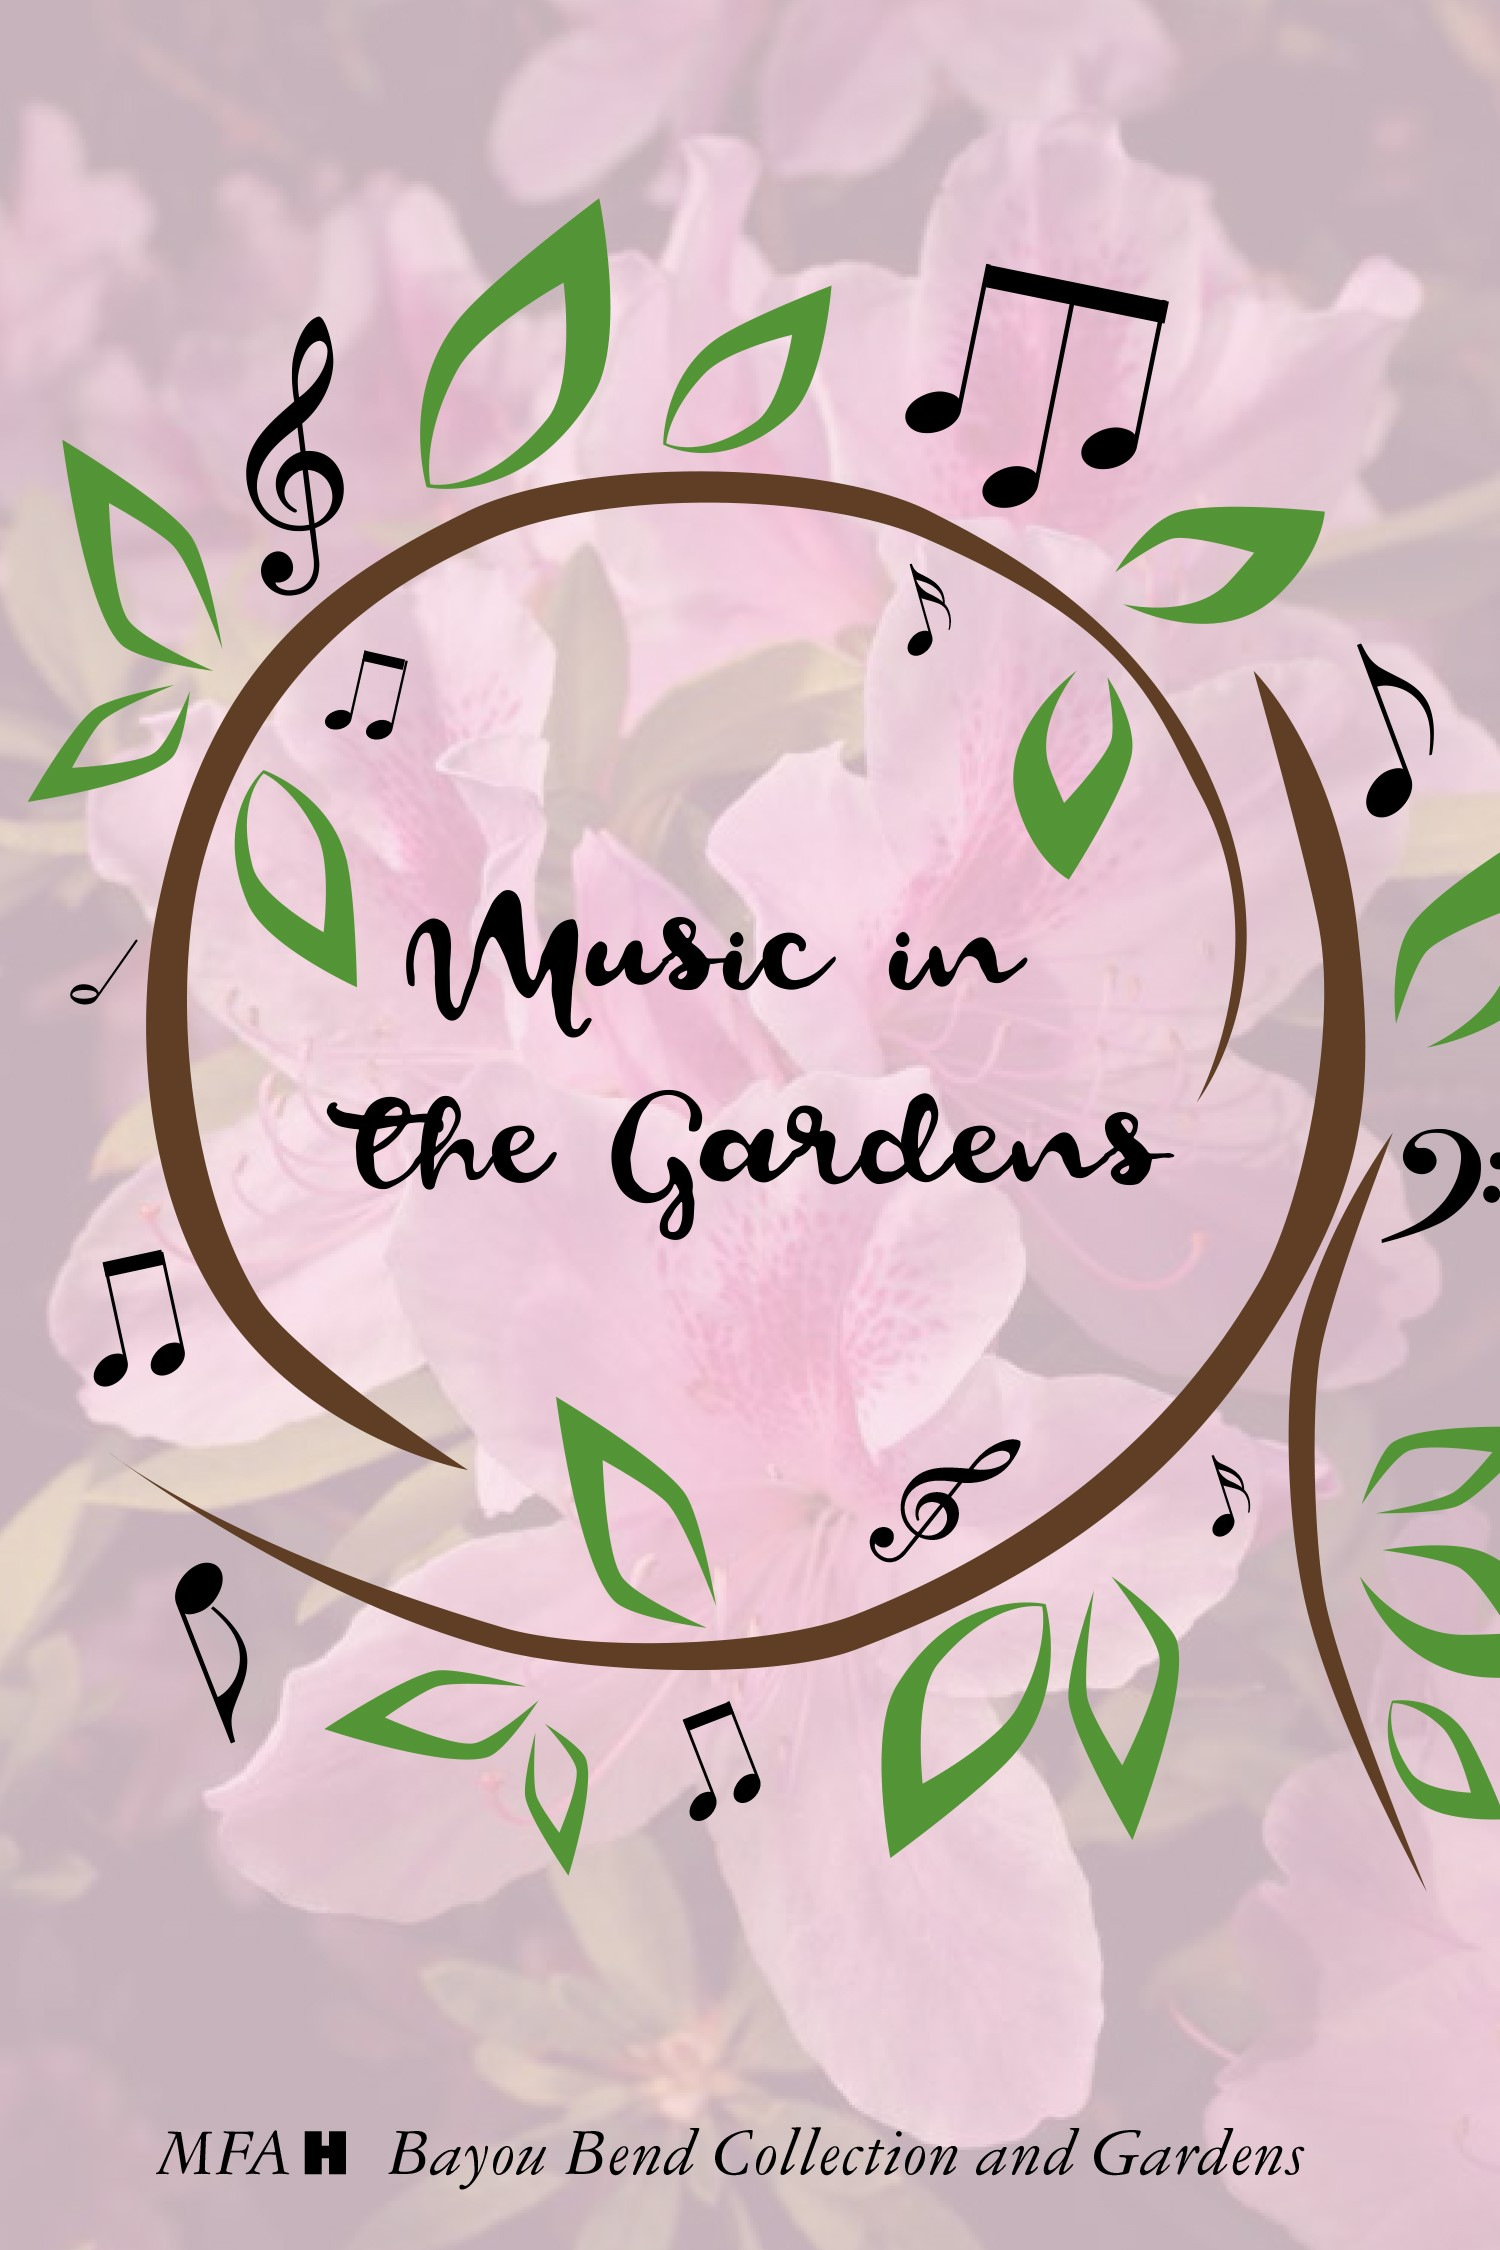 Music Audio Tour cover - Bayou Bend gardens